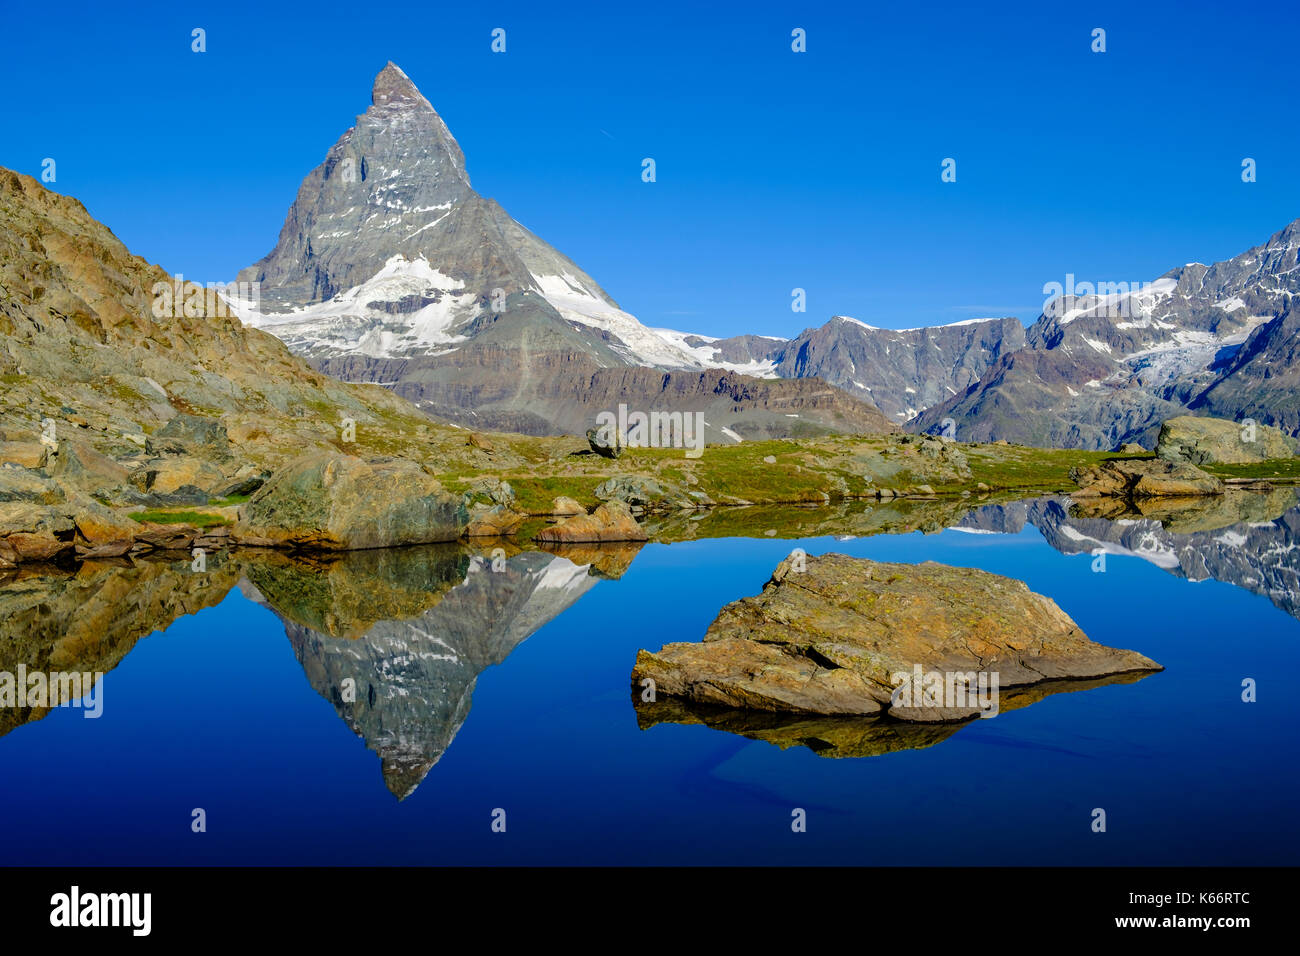 The East Face of the Matterhorn, Monte Cervino, mirroring in the Lake Riffelsee at sunrise Stock Photo